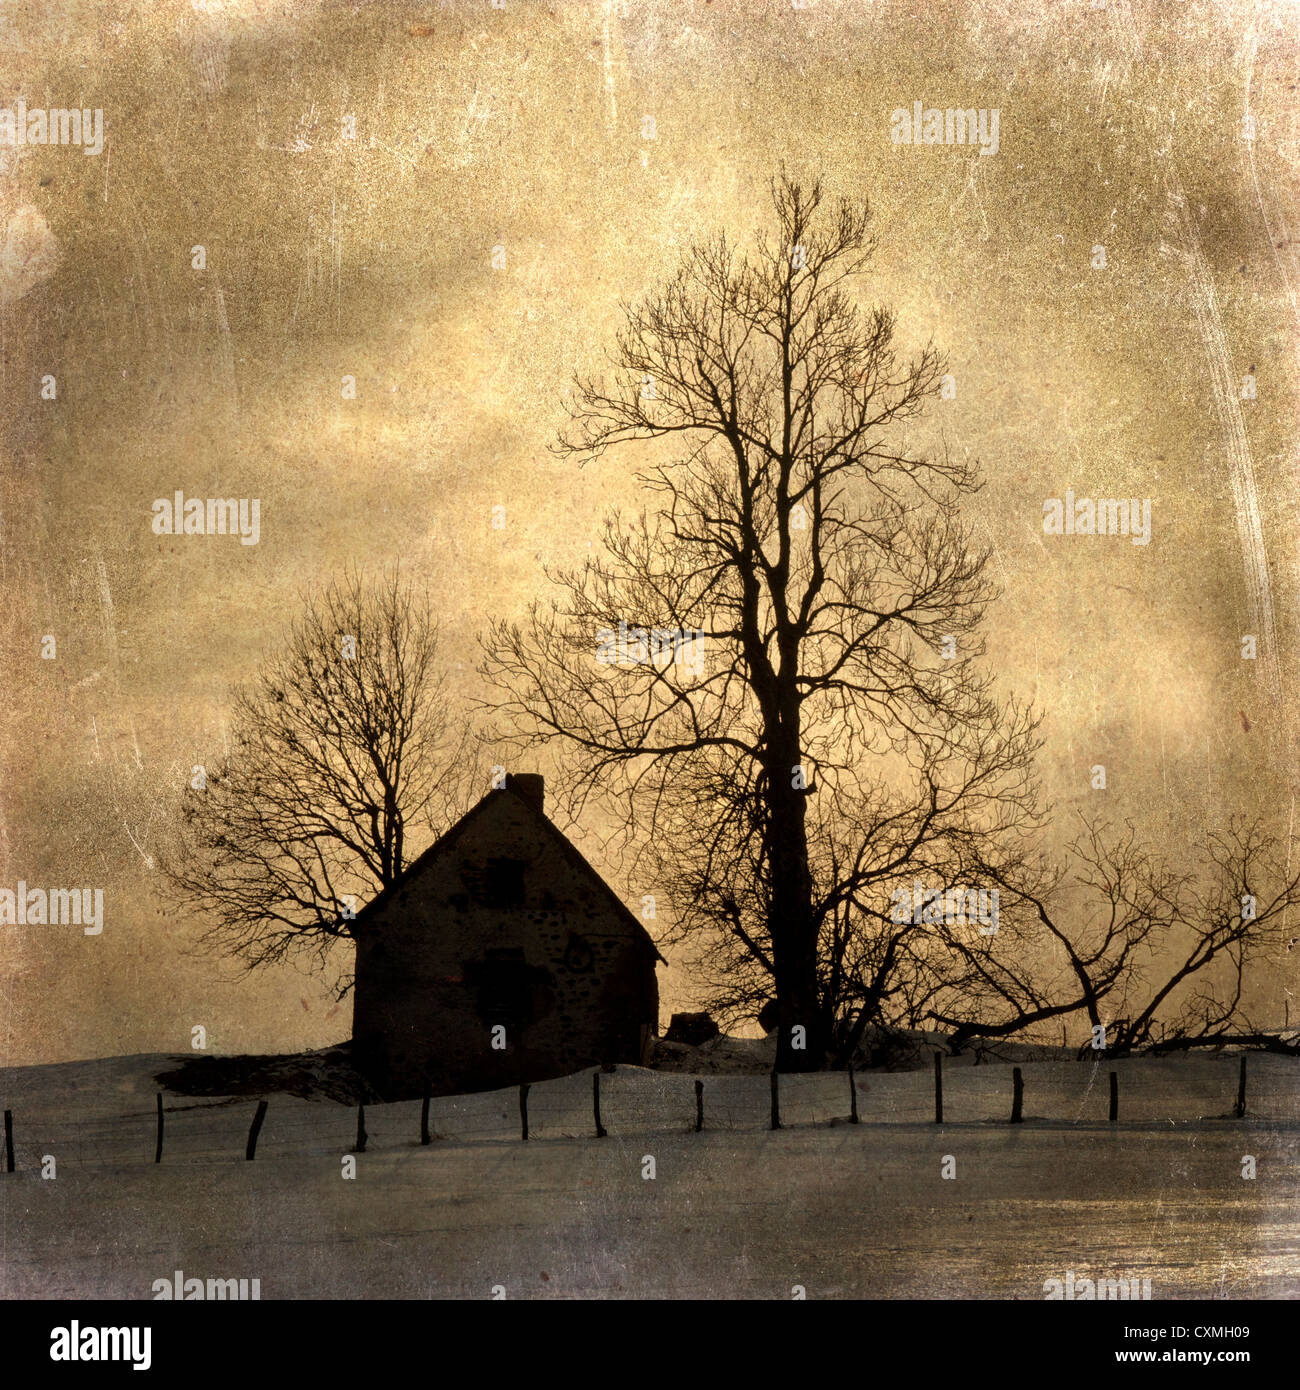 Farmhouse / house - vintage-look - textured art effect image - Stock Image